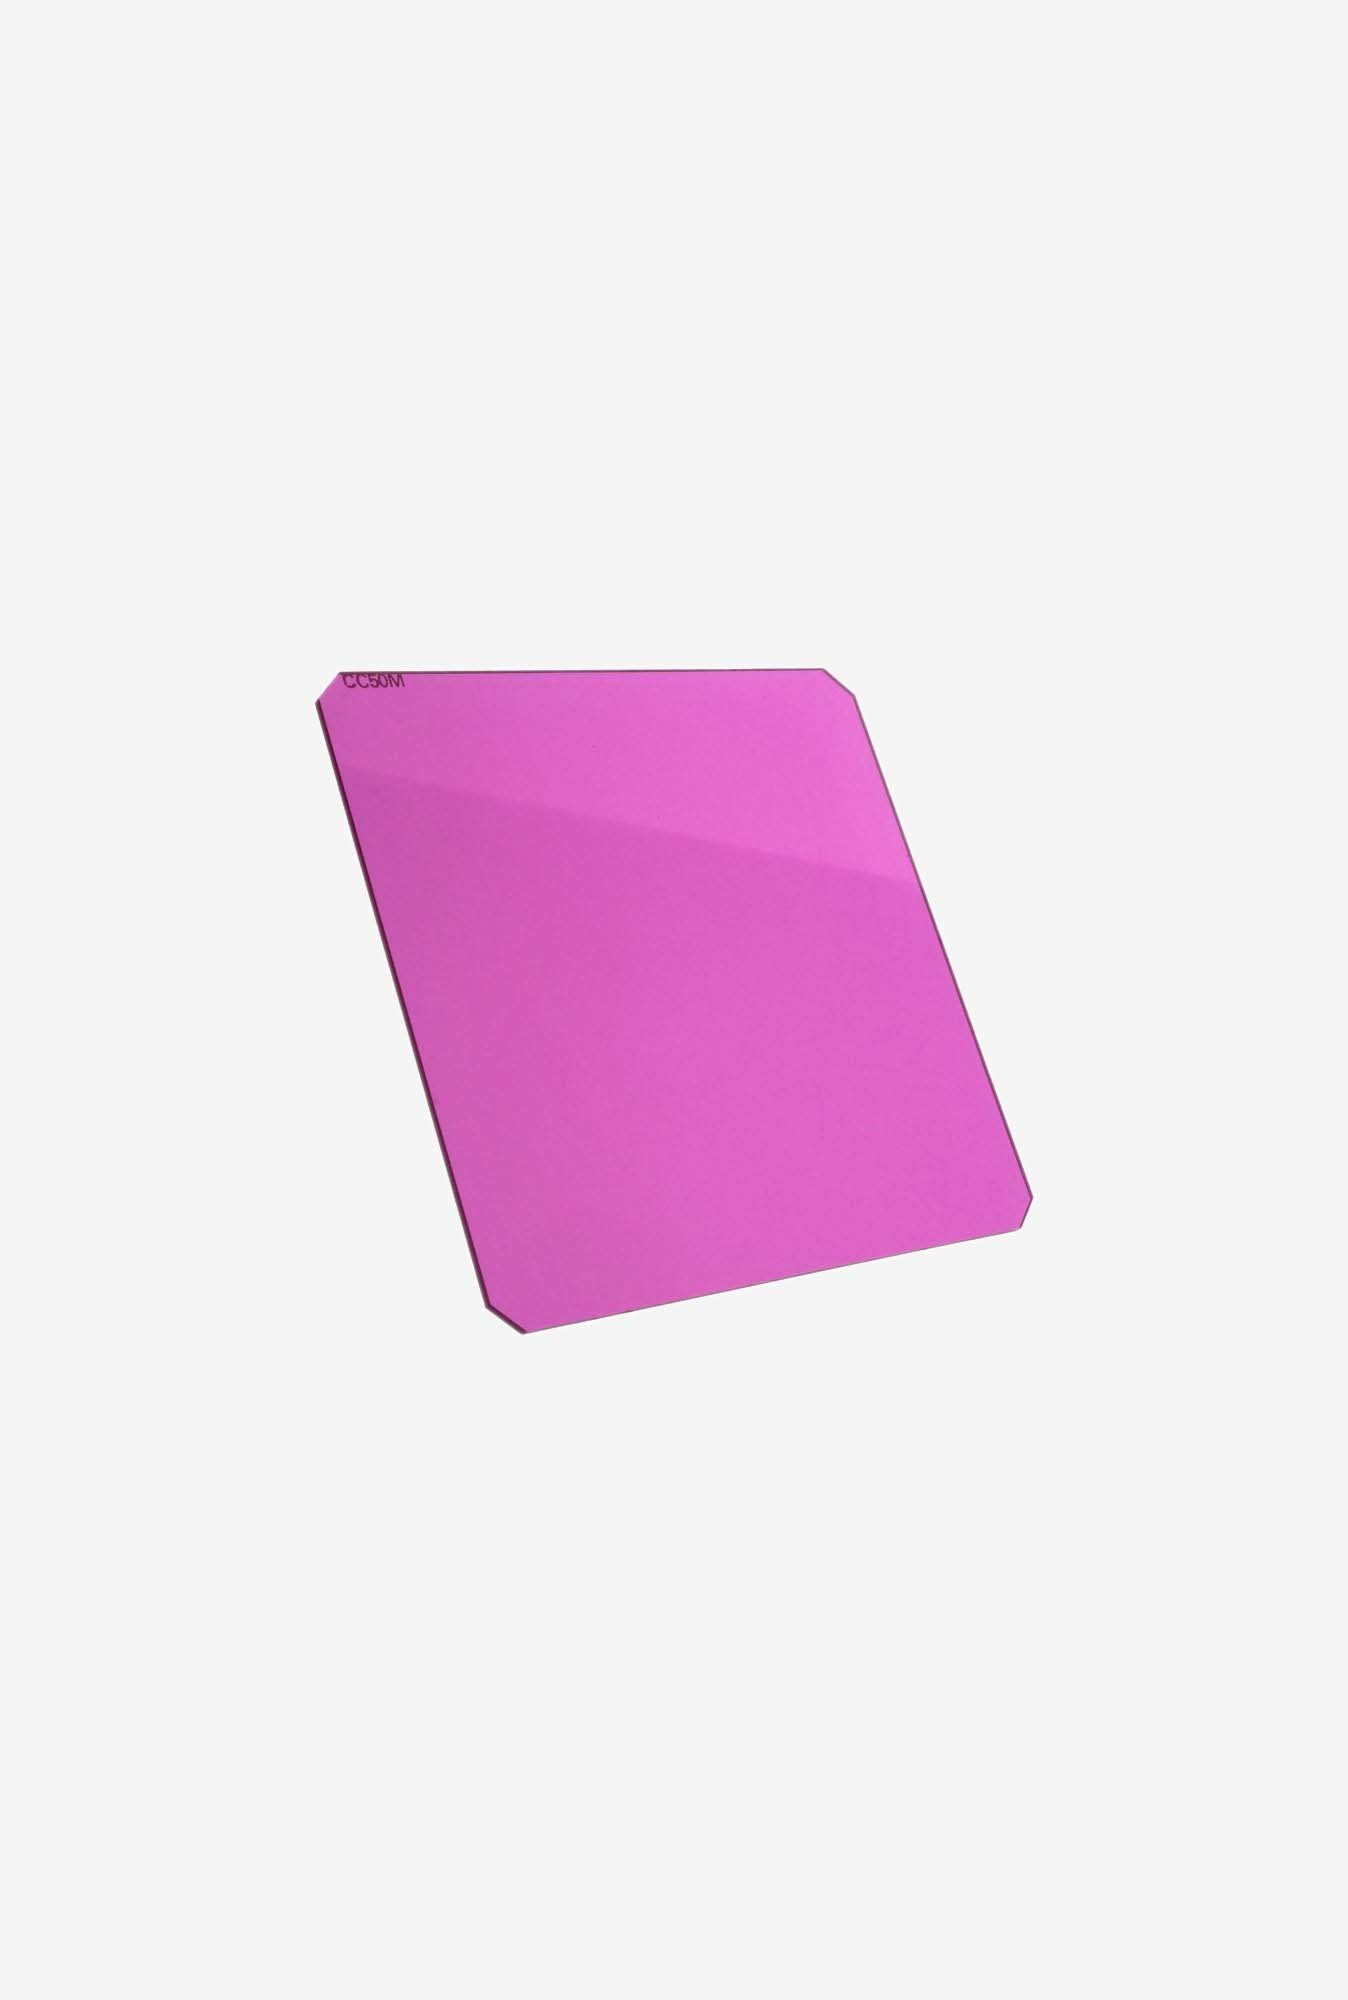 Formatt Hitech 67x85mm Color Correction Filter (Magenta 50)